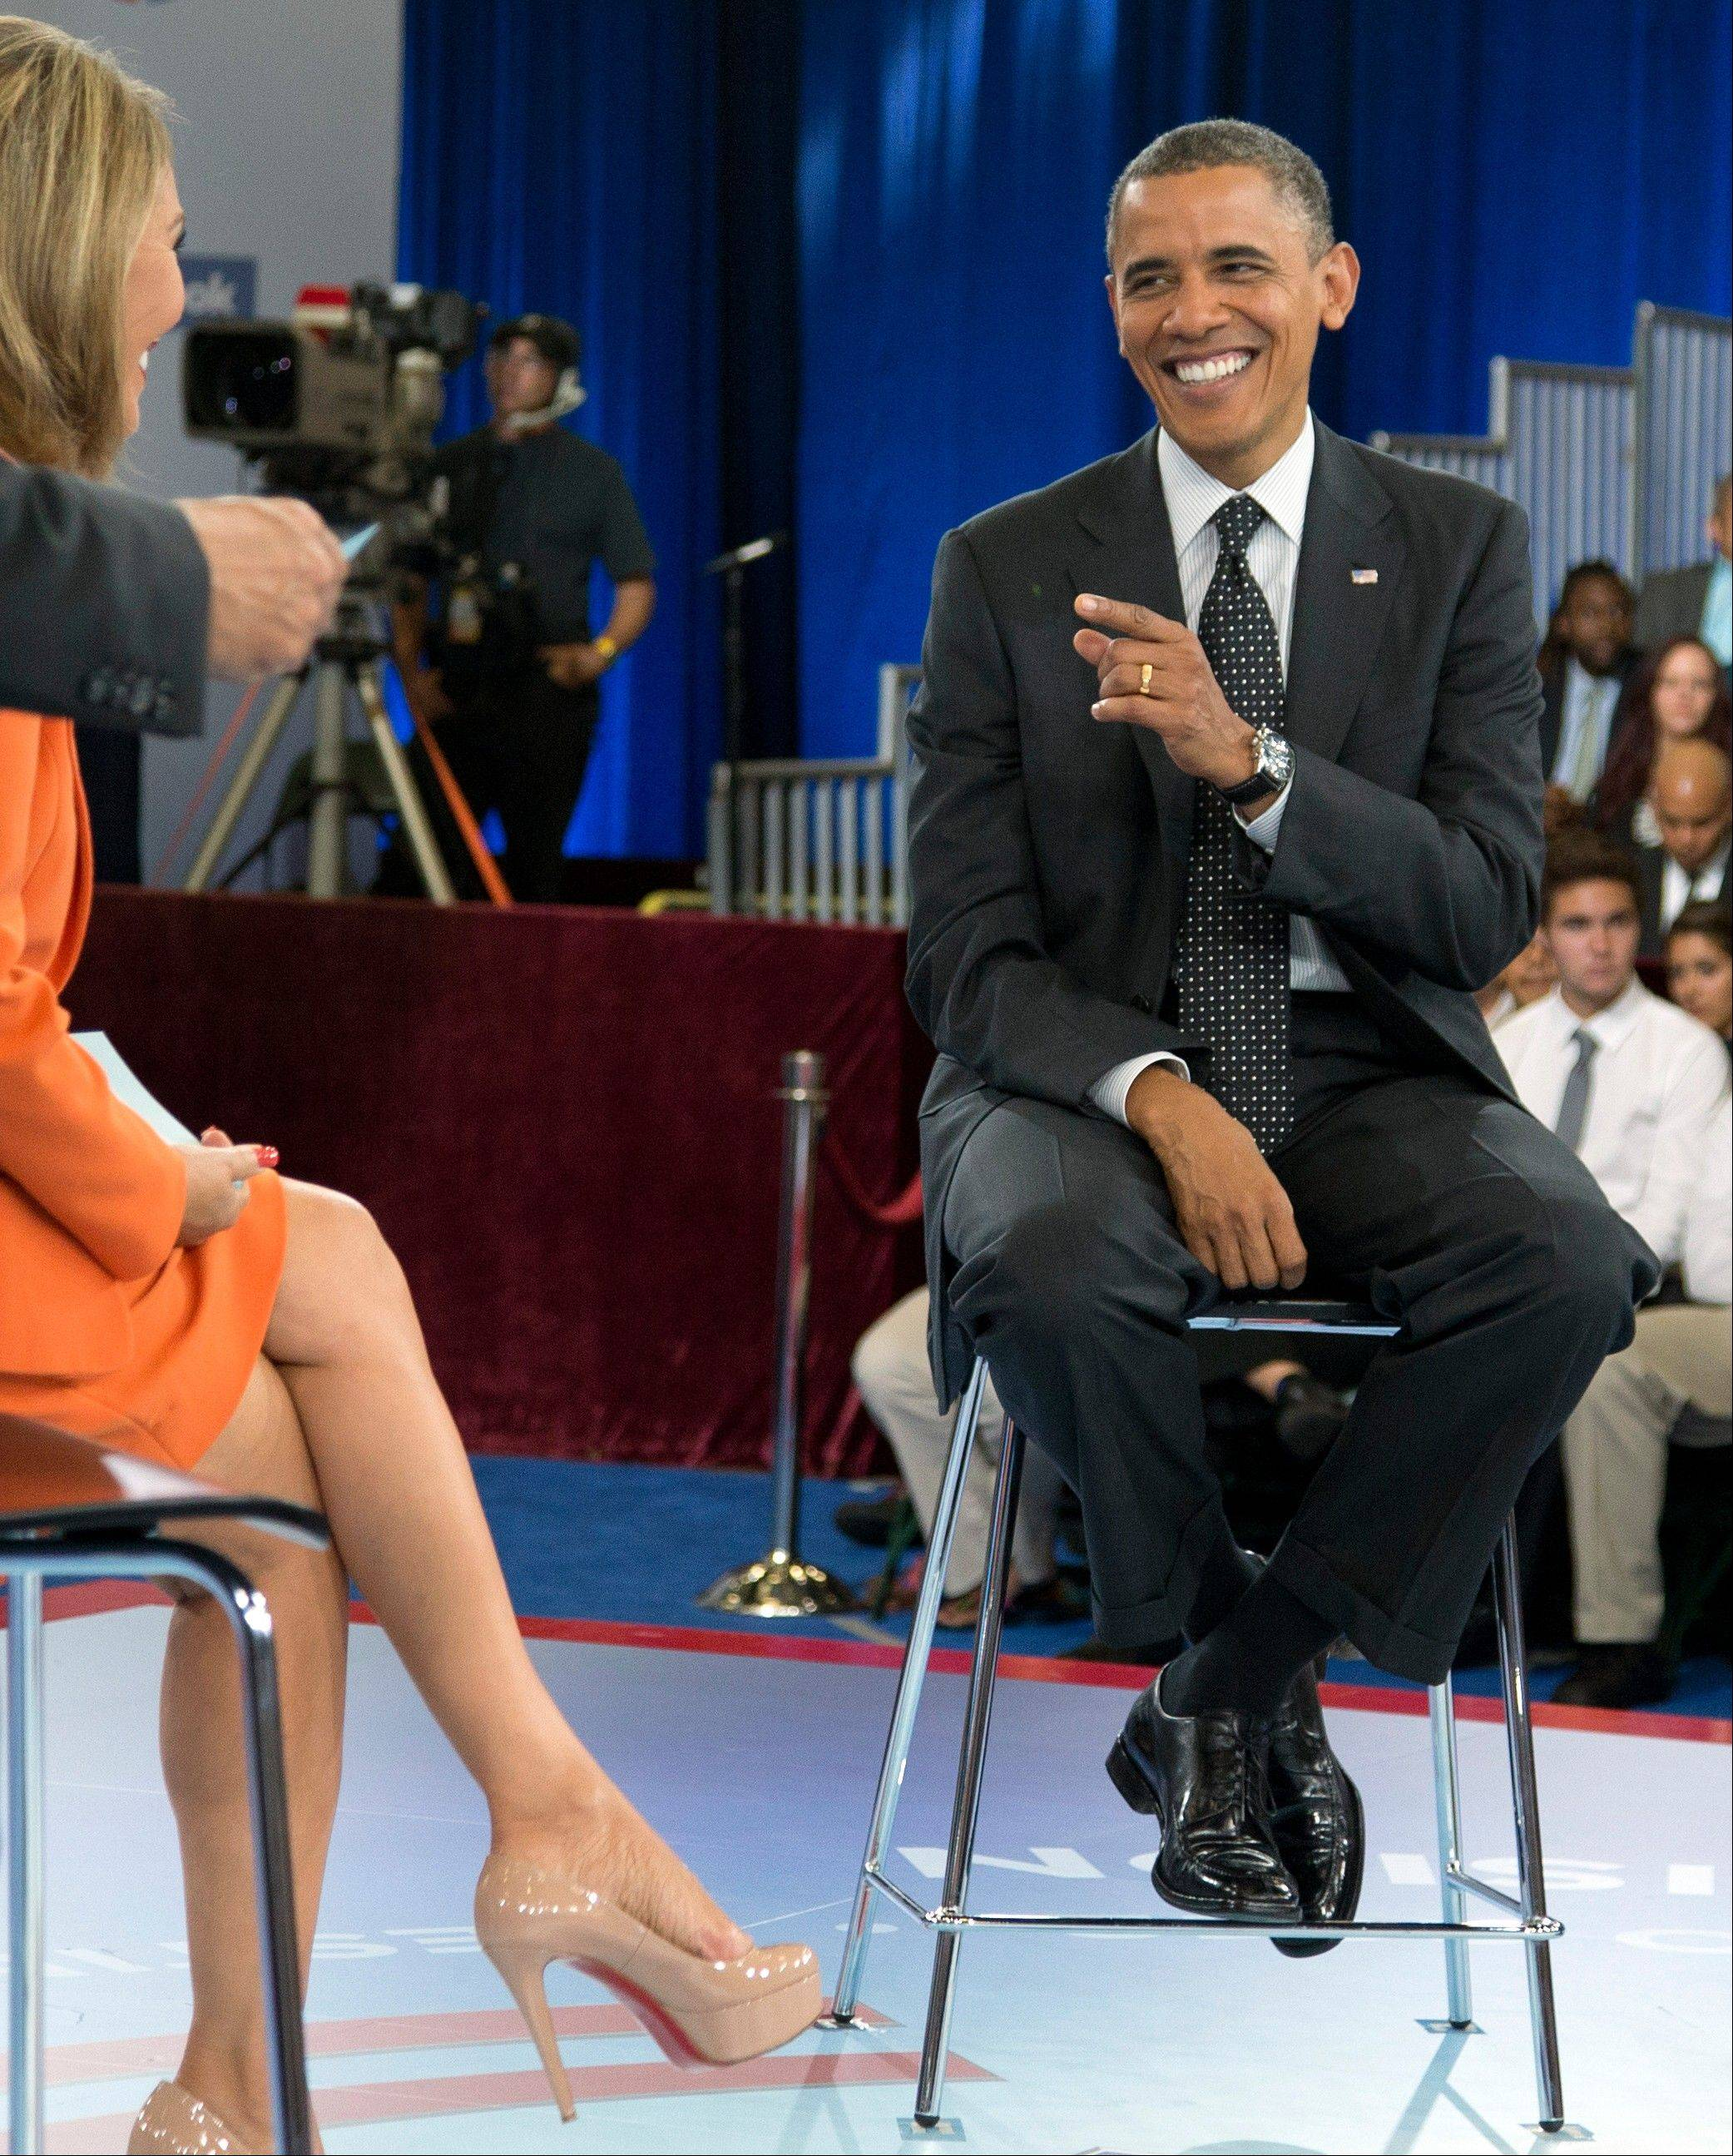 President Barack Obama participates in a town hall hosted by Univision and Univision news anchor Maria Elena Salinas, left, at the University of Miami Thursday in Coral Gables, Fla.